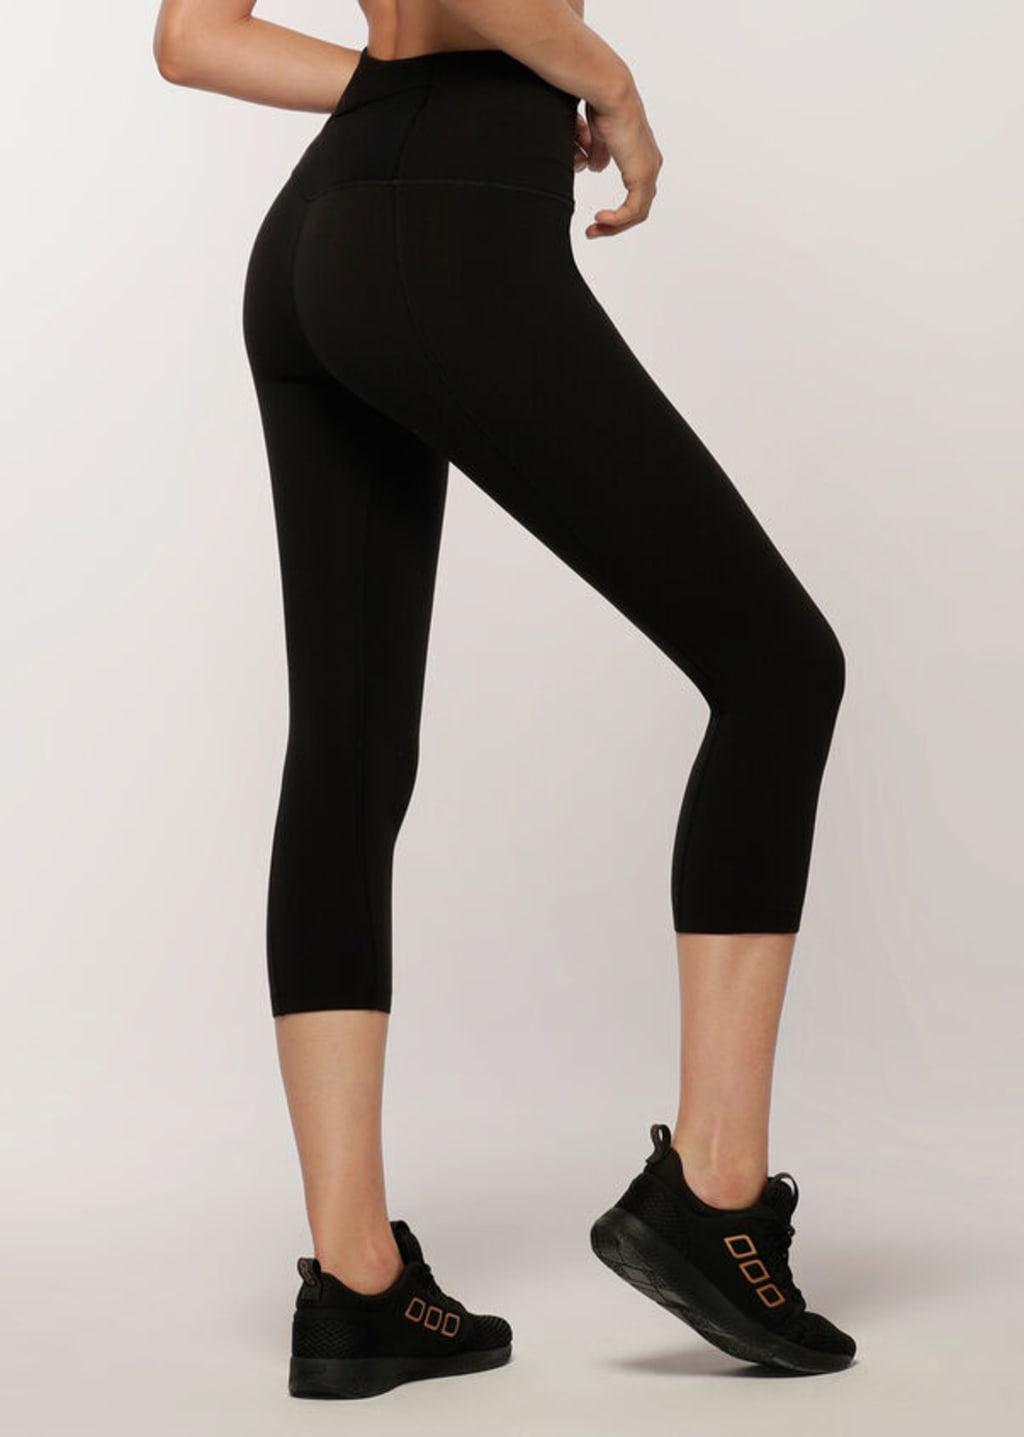 Buying Women's Leggings: Factors To Consider